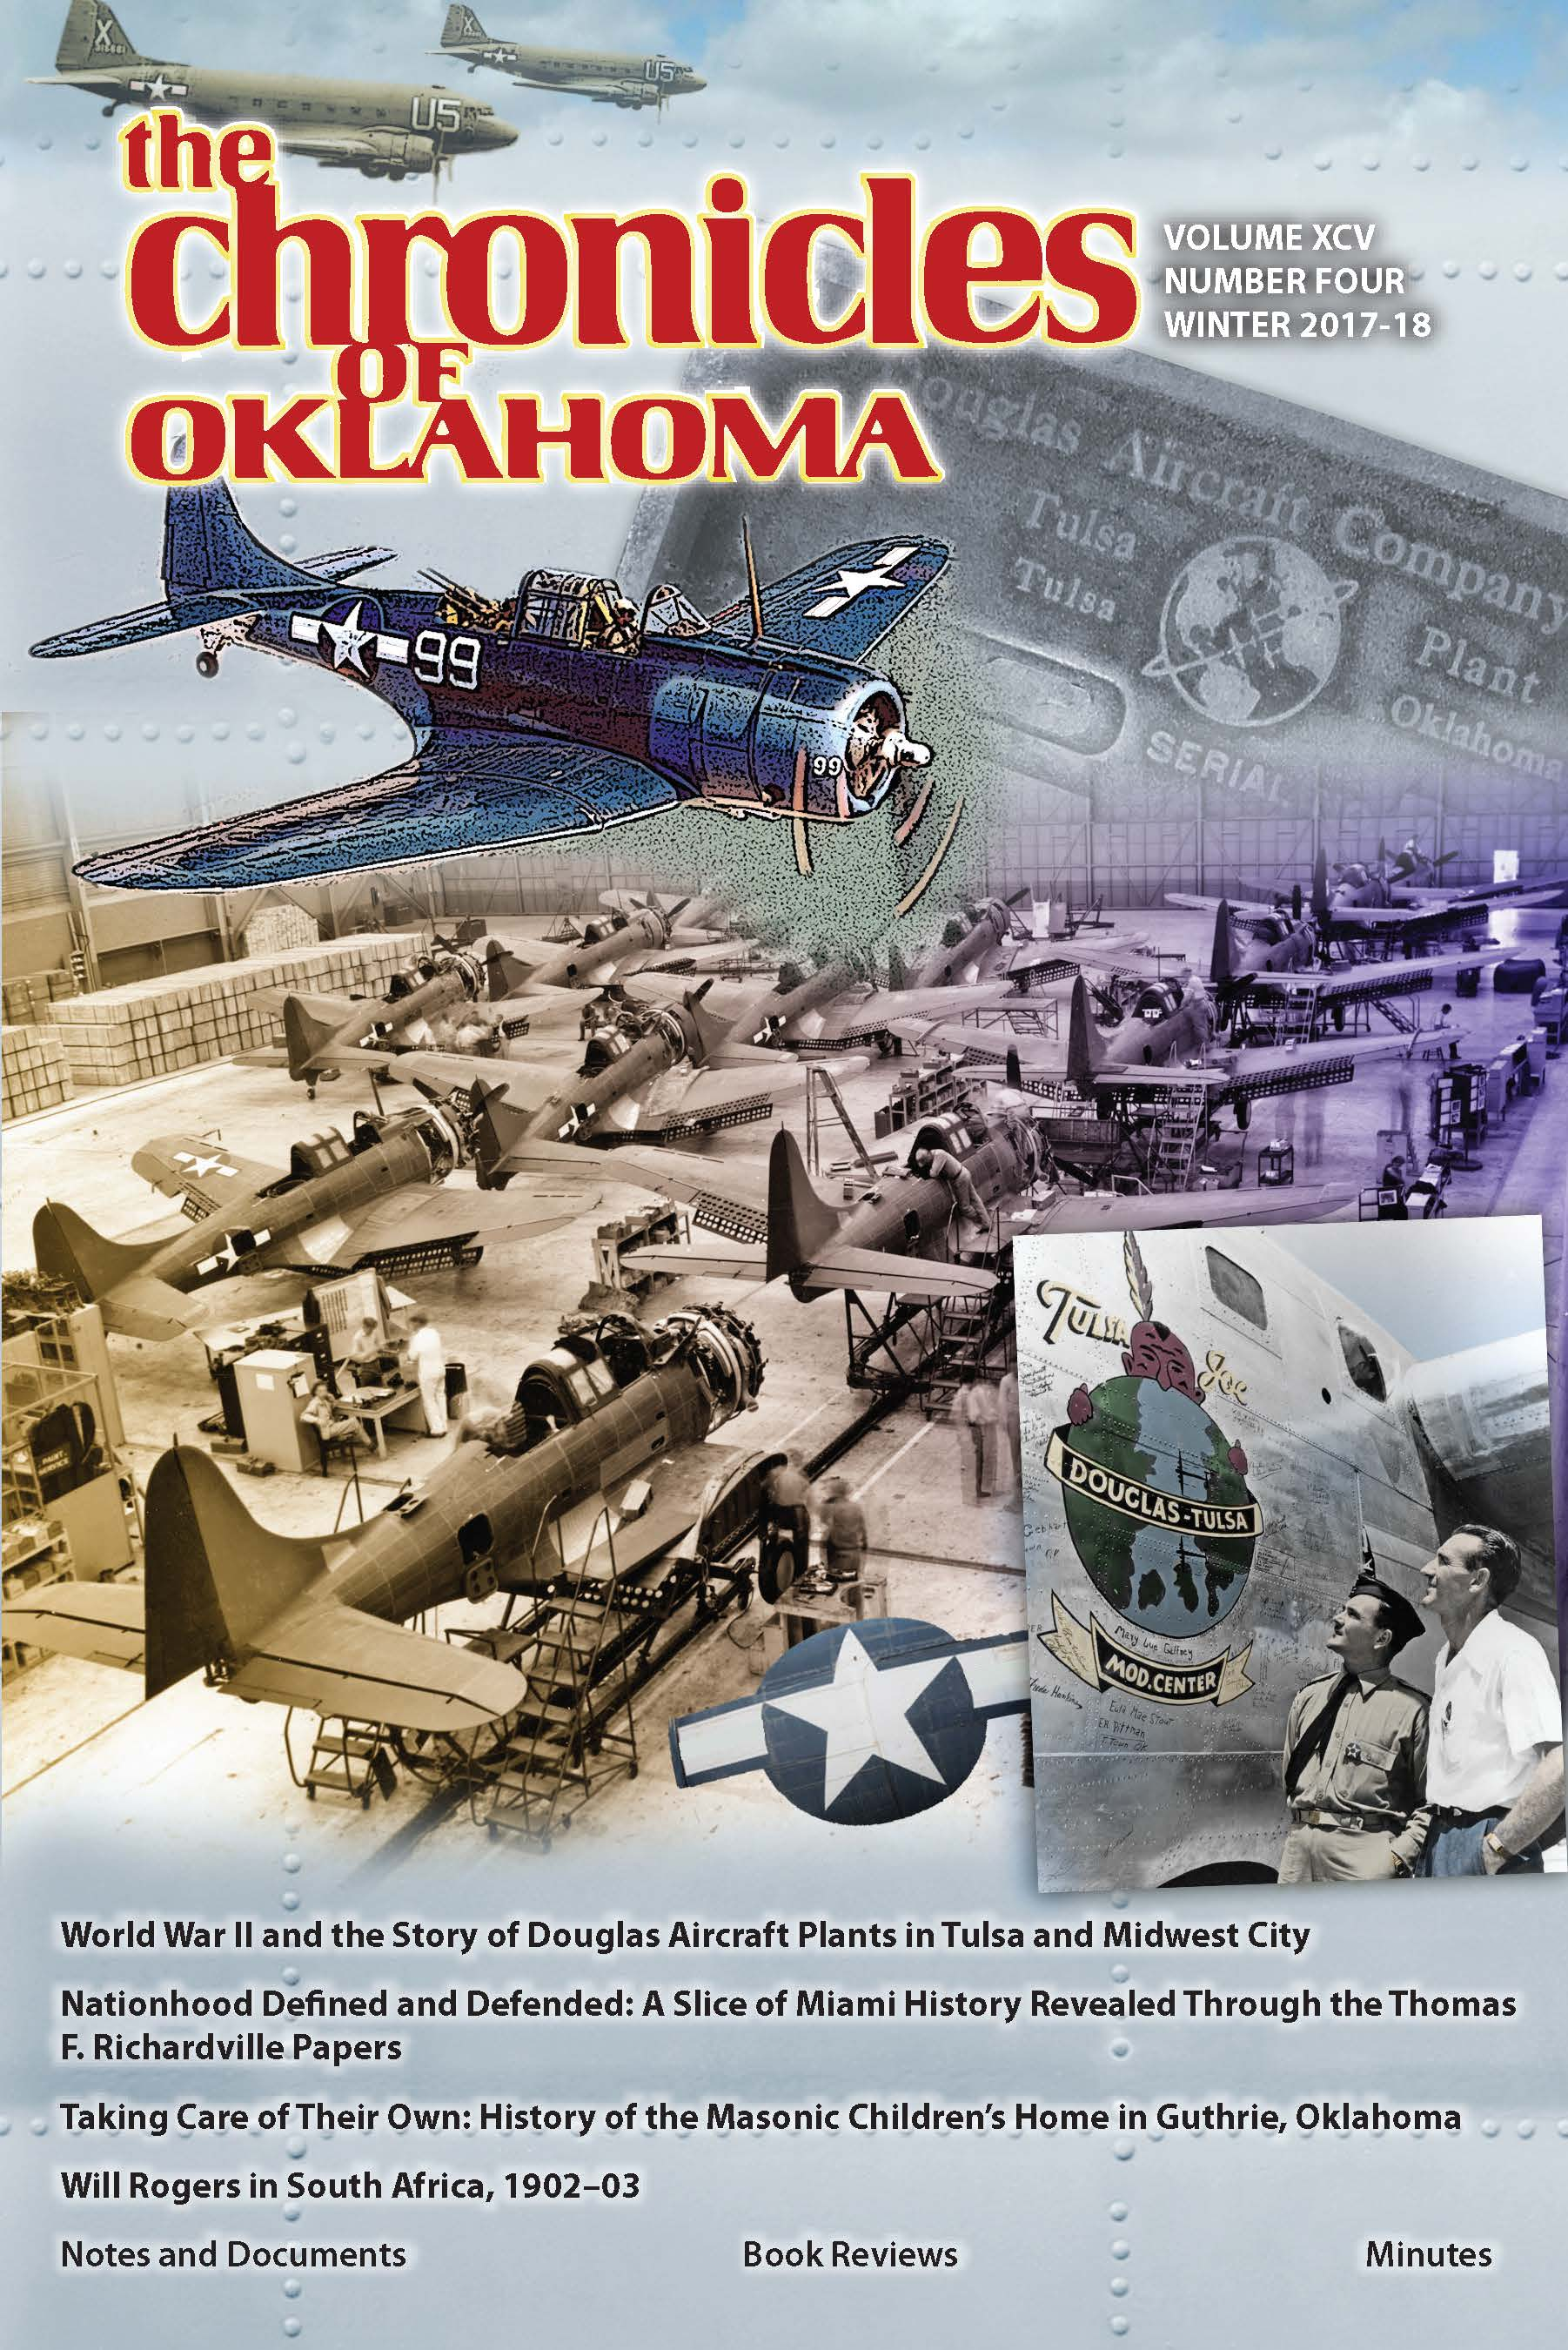 The Chronicles of Oklahoma | Contents